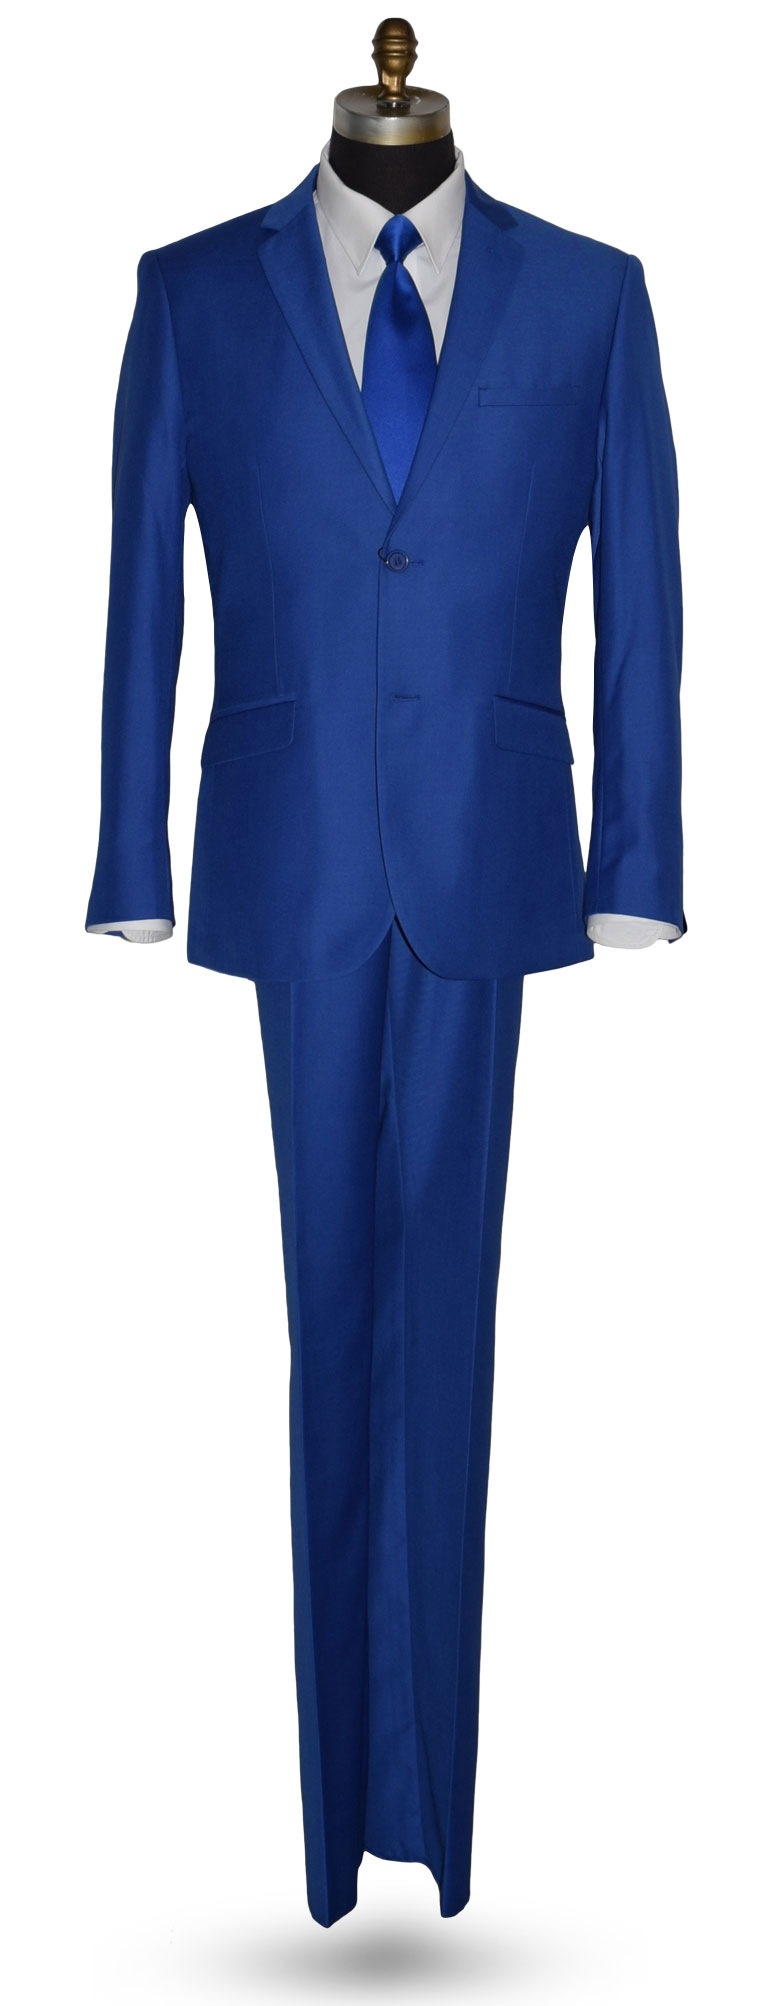 Royal Blue 3 Piece Suit - Coat, Pants and Vest